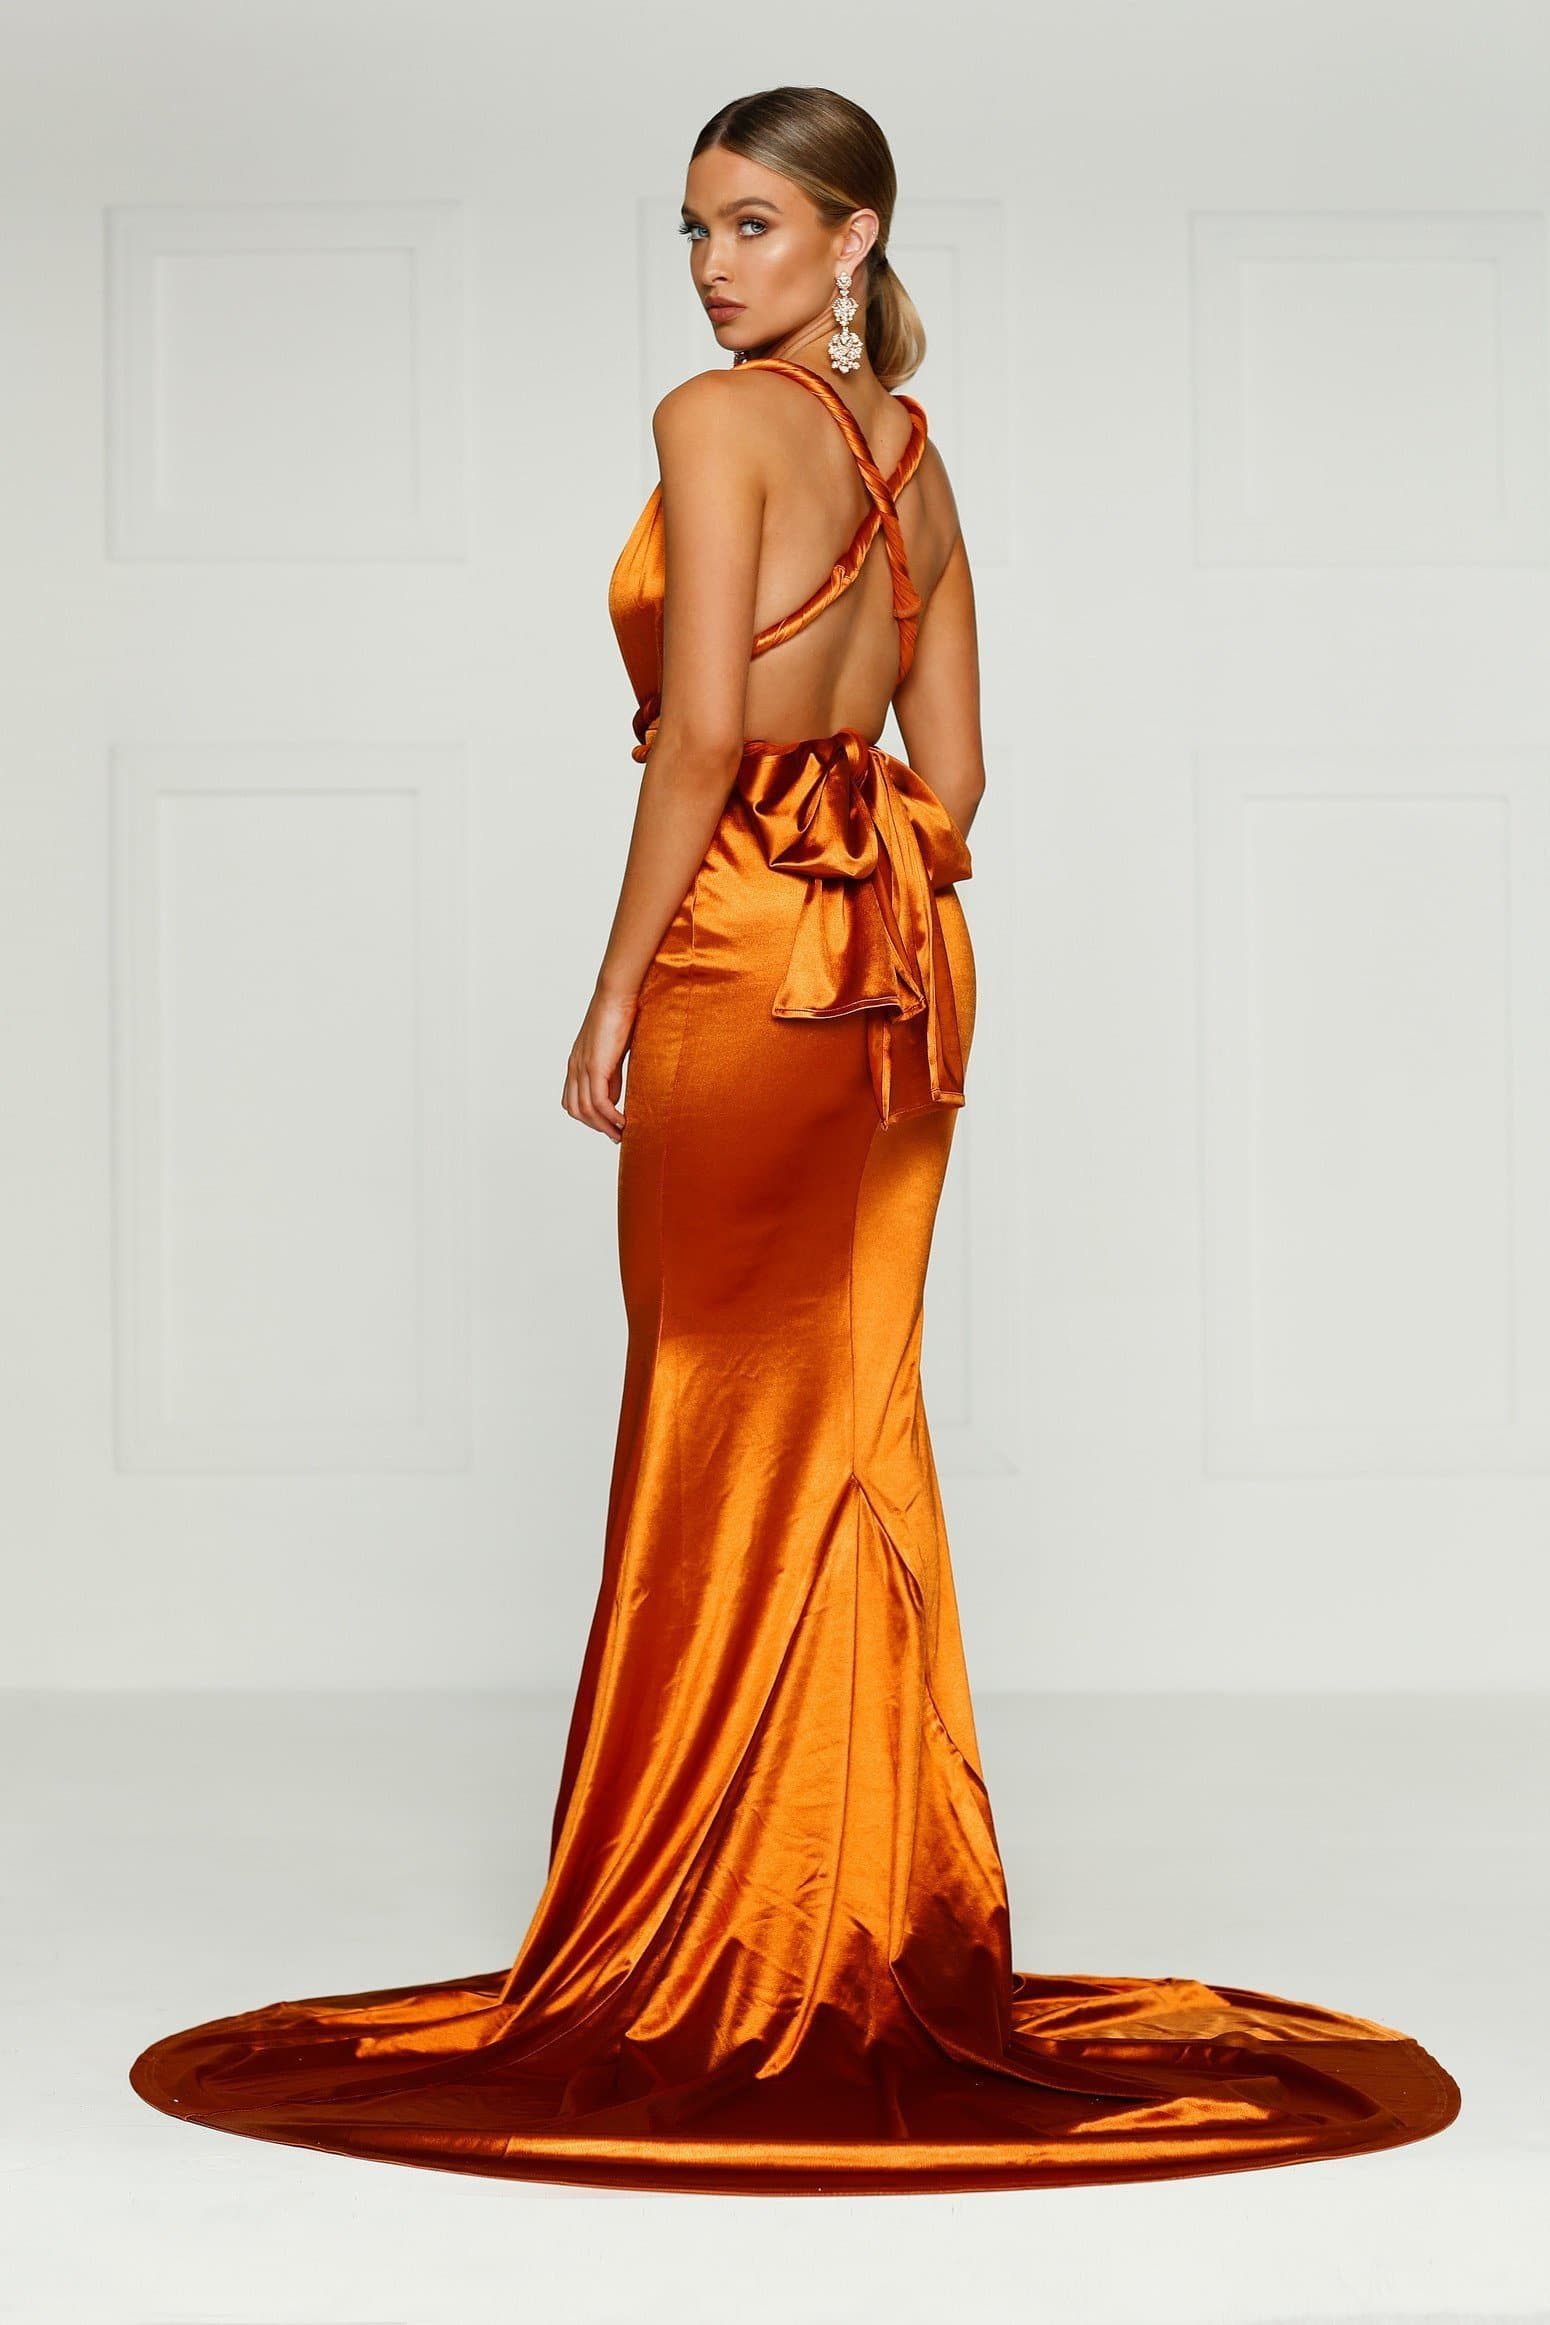 Lena multiway gown gold rust prom dress in satin fabric multiway satin wrap dress perfect for a gala ball or as a prom dress bridesmaid ombrellifo Gallery